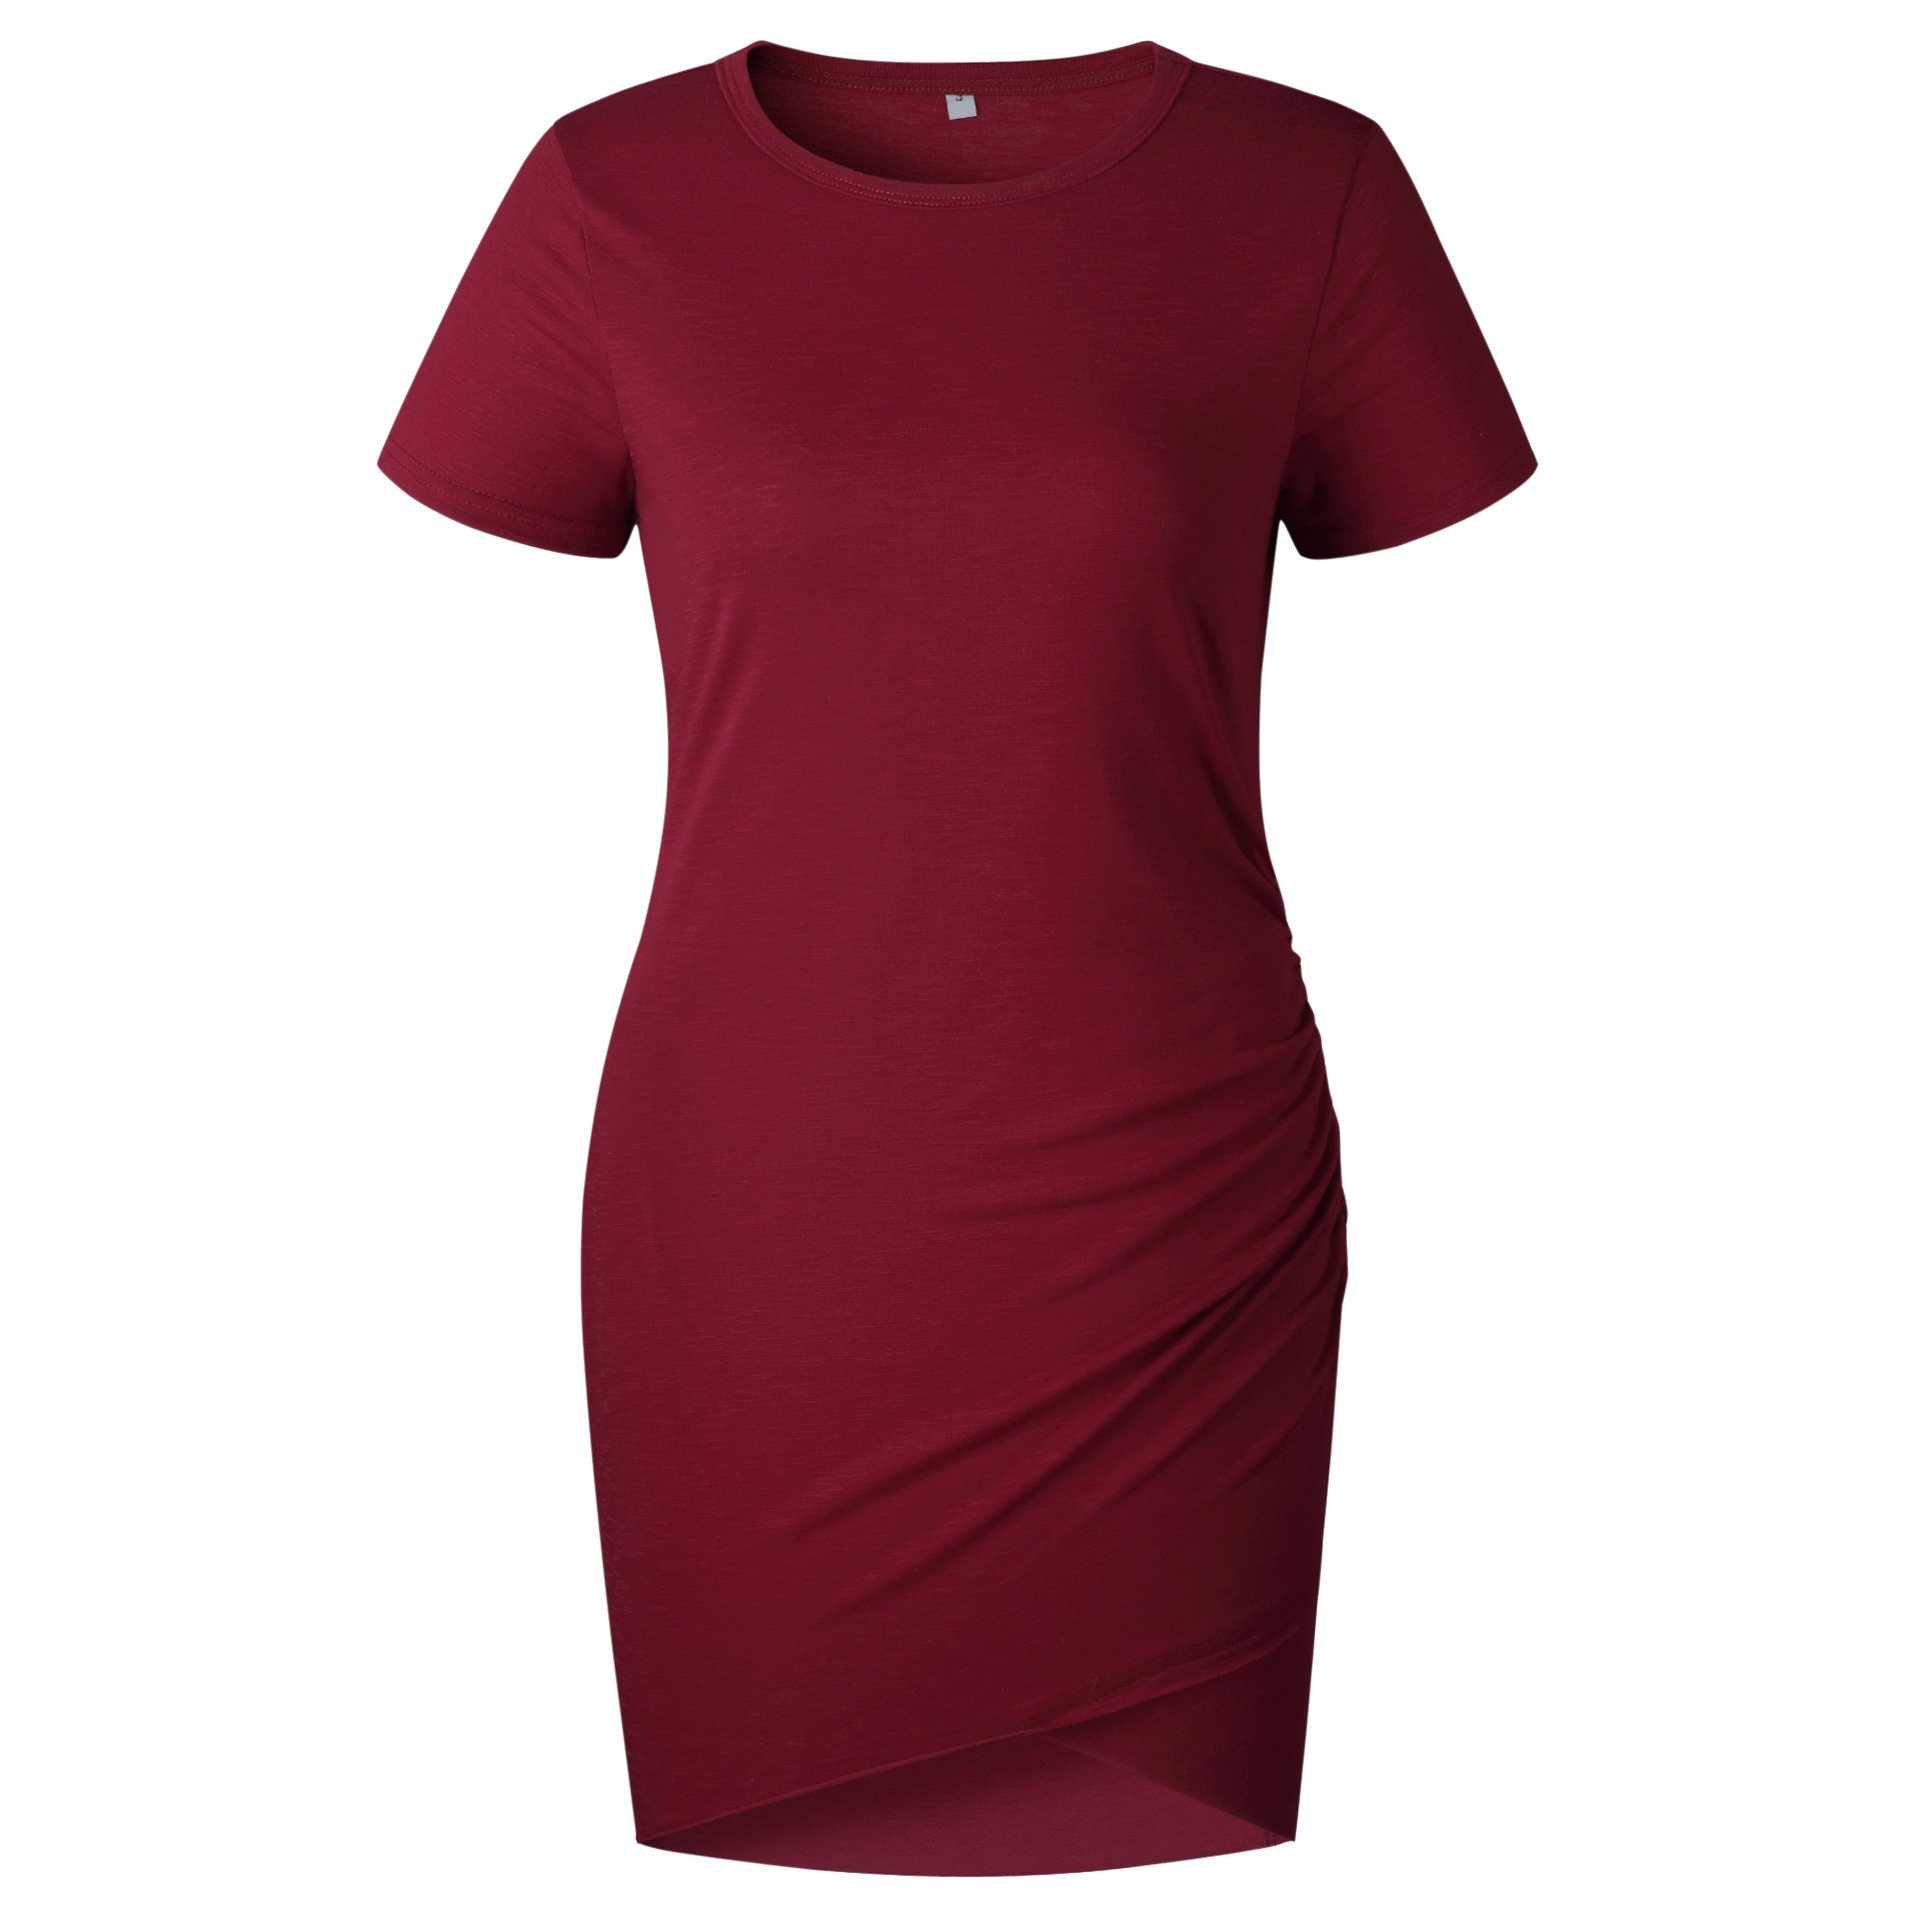 Women\'s Short Sleeve Bodycon Dresses - Sexy Ruched Tulip Hem Sheath Mini Dresses Small Wine Red